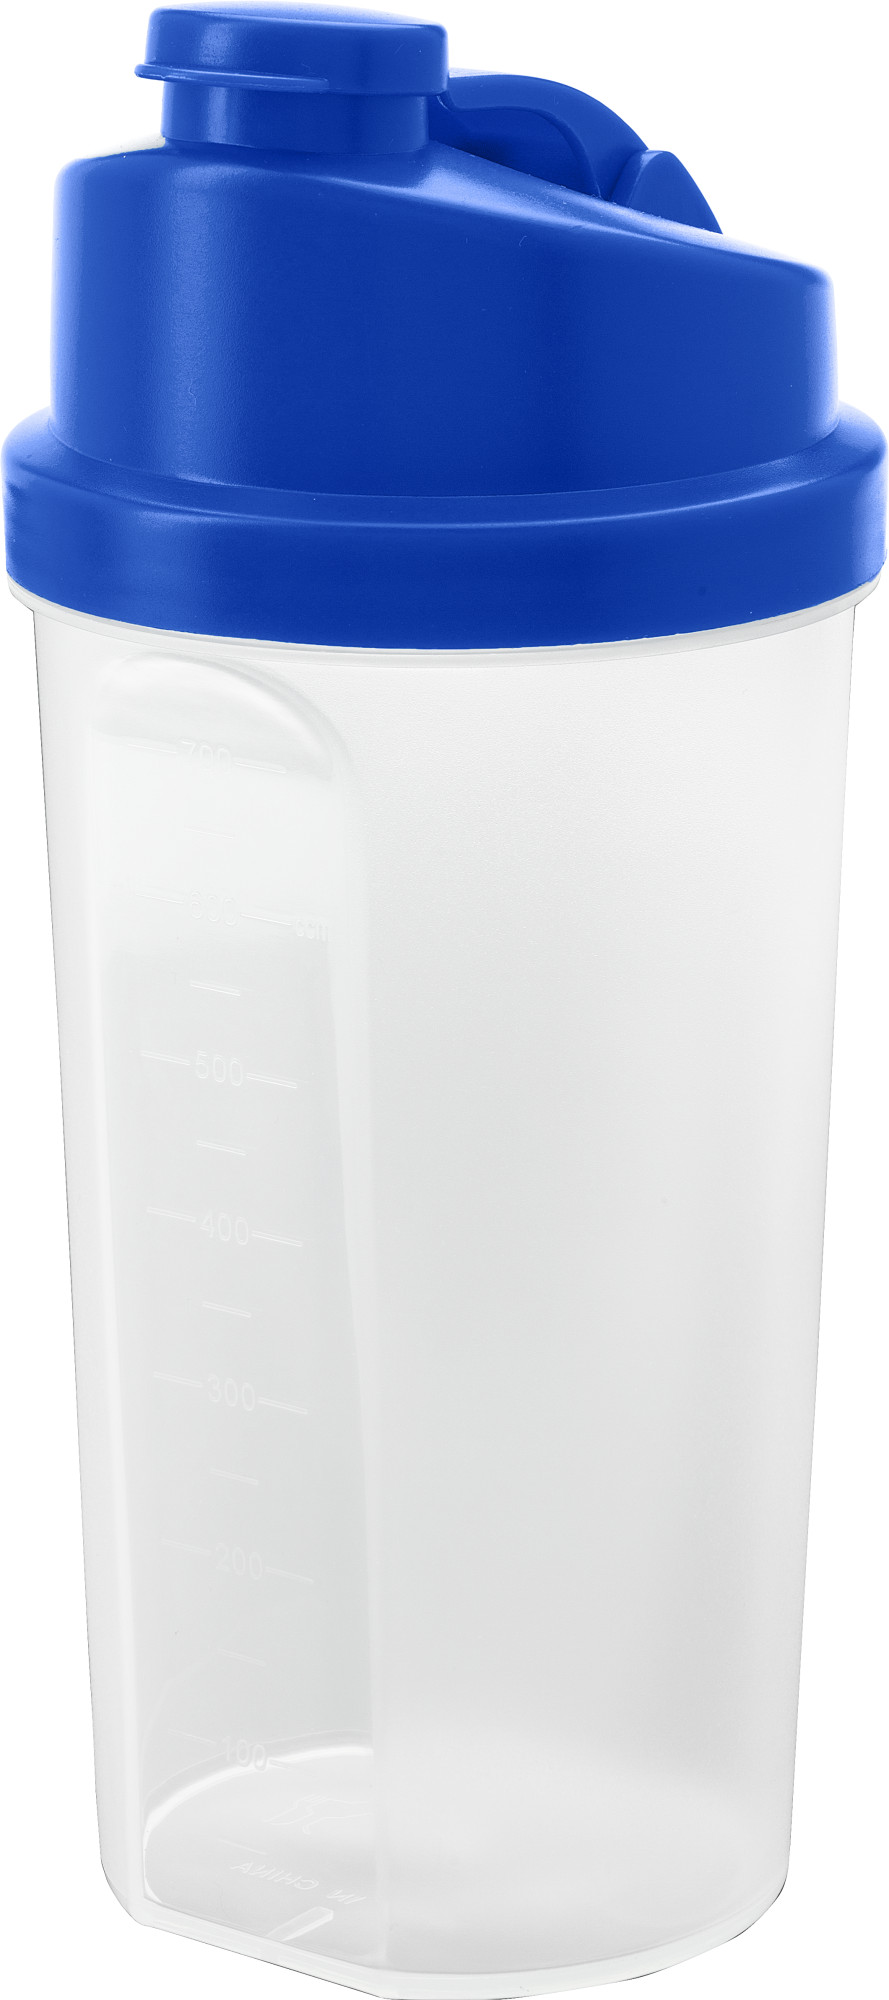 Promotional Protein shaker. 700ml